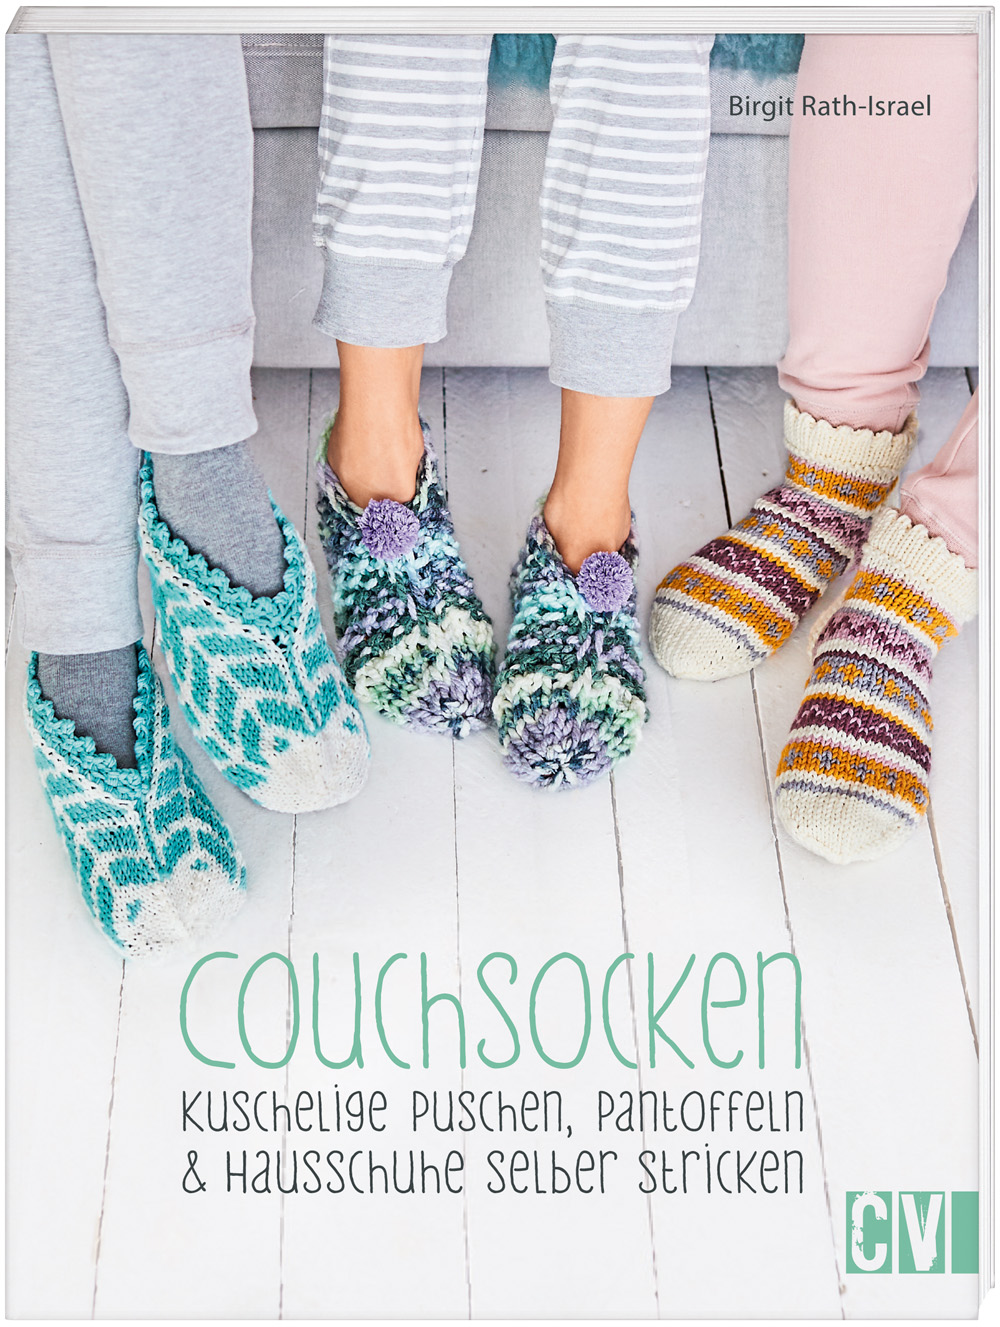 CV 6481 Couchsocken